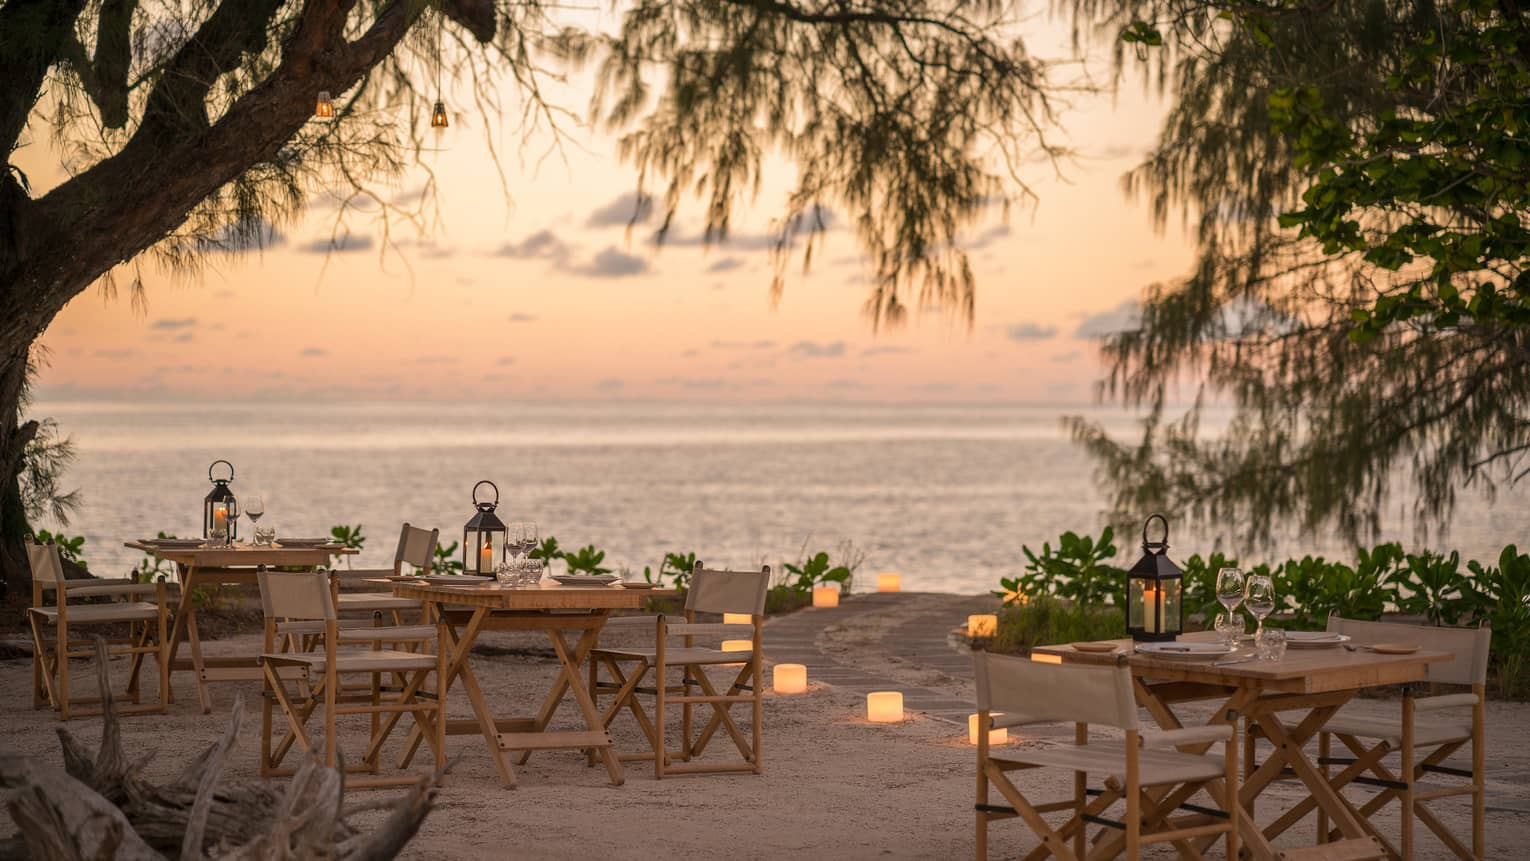 Outdoor wooden tables and chairs on sand at dusk with lit candles lining path to the ocean